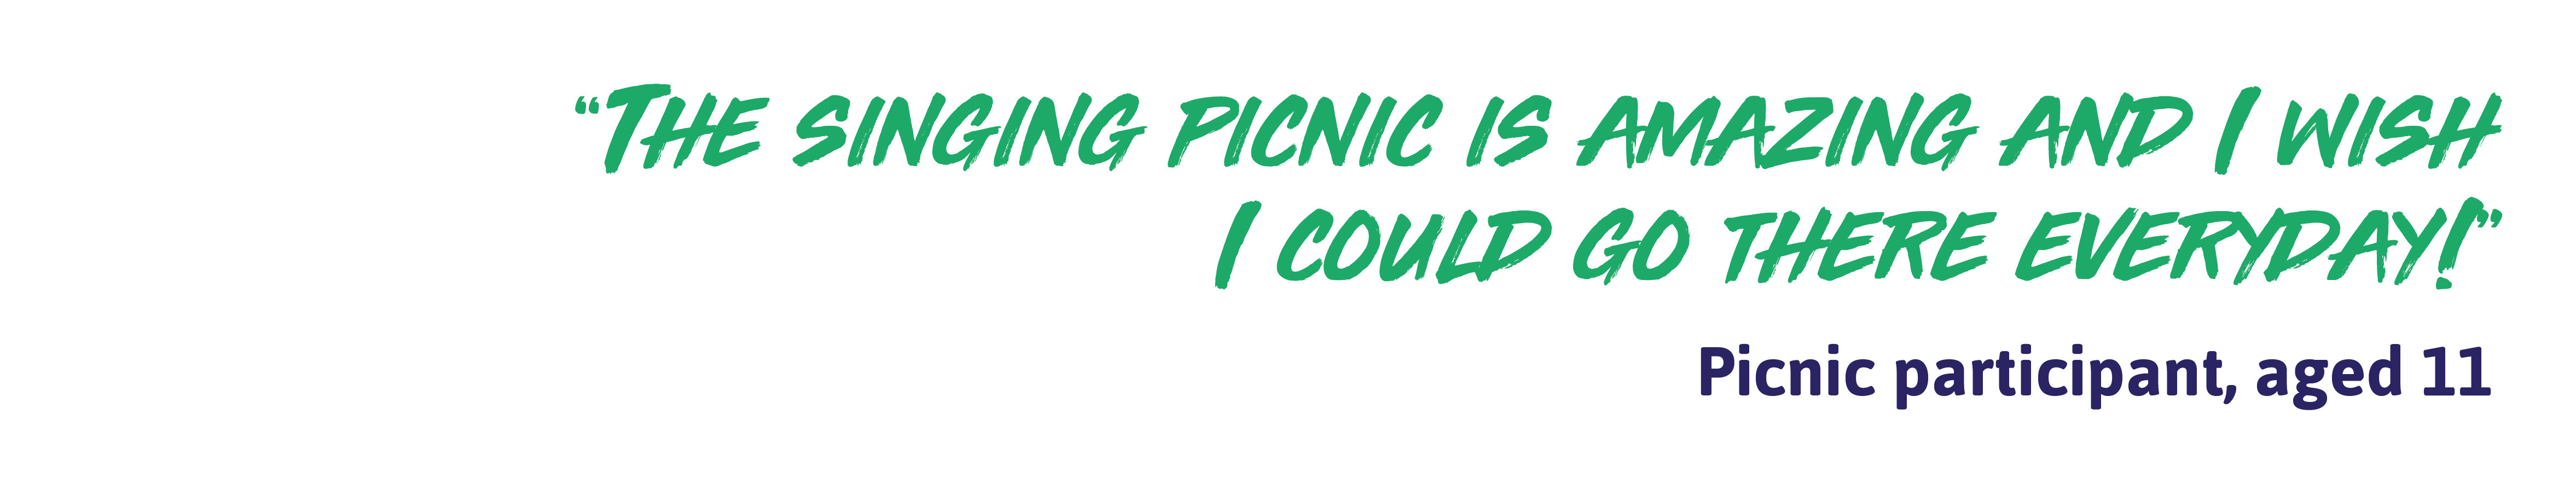 """Quote: """"The singing picnic is amazing and I wish I could go there everyday!"""" - Picnic participant, aged 11"""